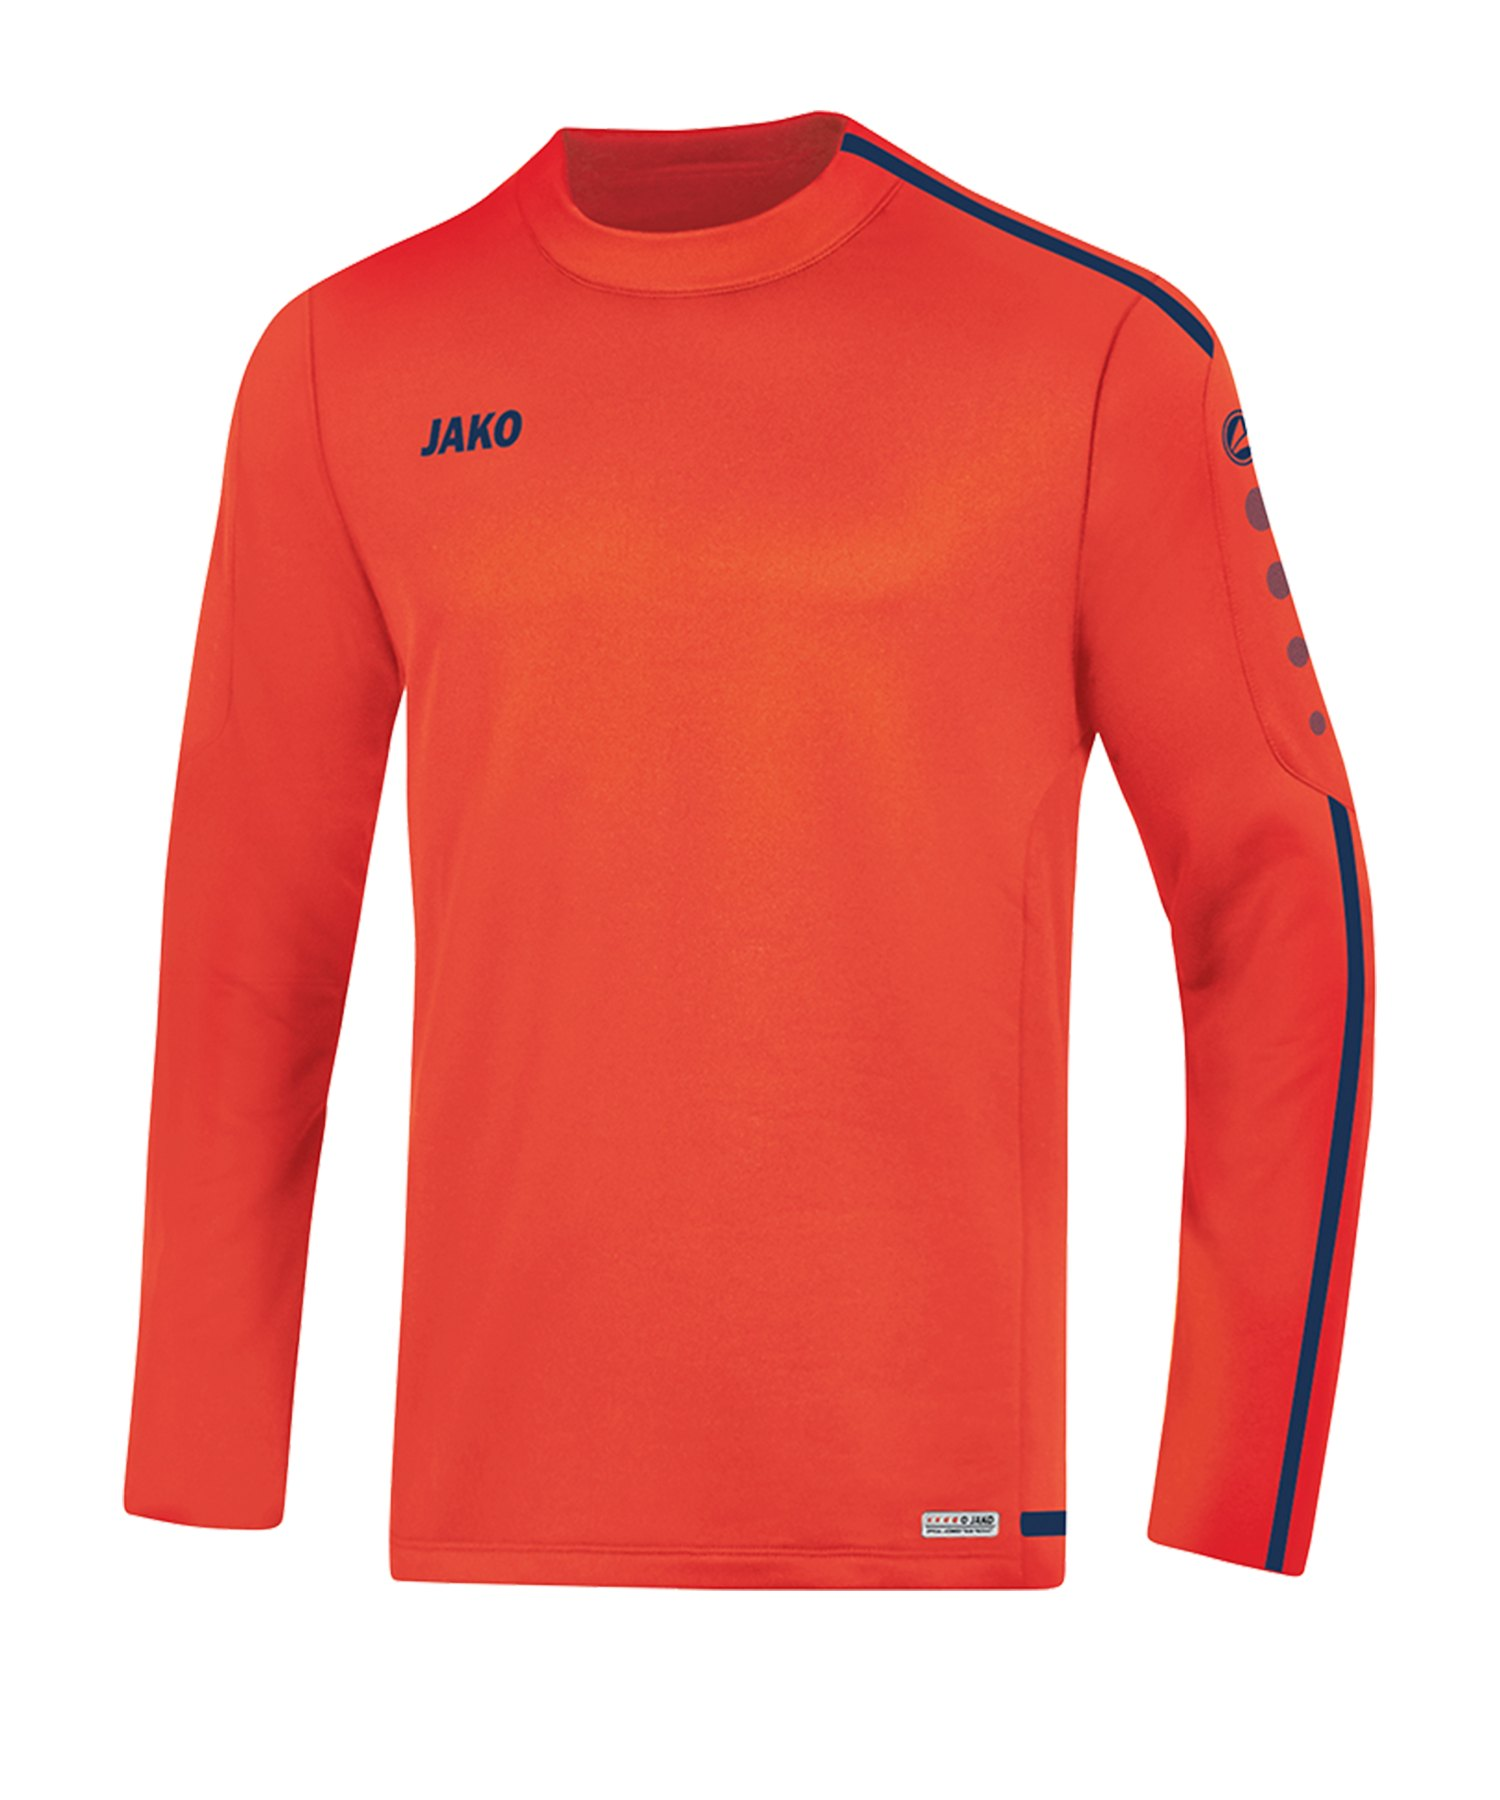 Jako Striker 2.0 Sweatshirt Kids Orange Blau F18 - Orange